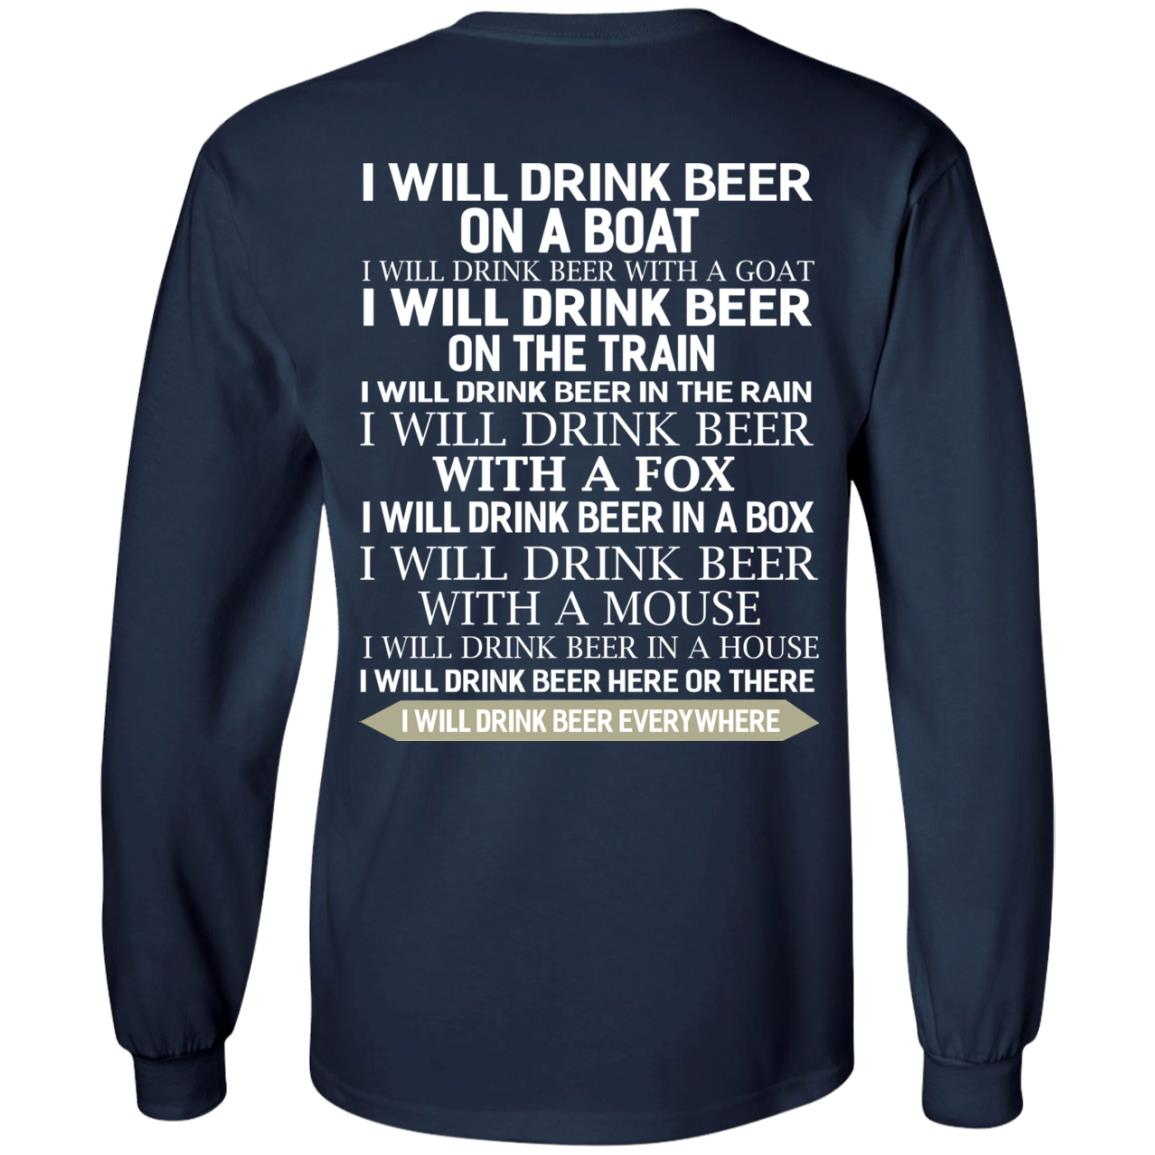 image 317 - I Will Drink Beer On a Boat I Will Drink Beer With a Goat Shirt